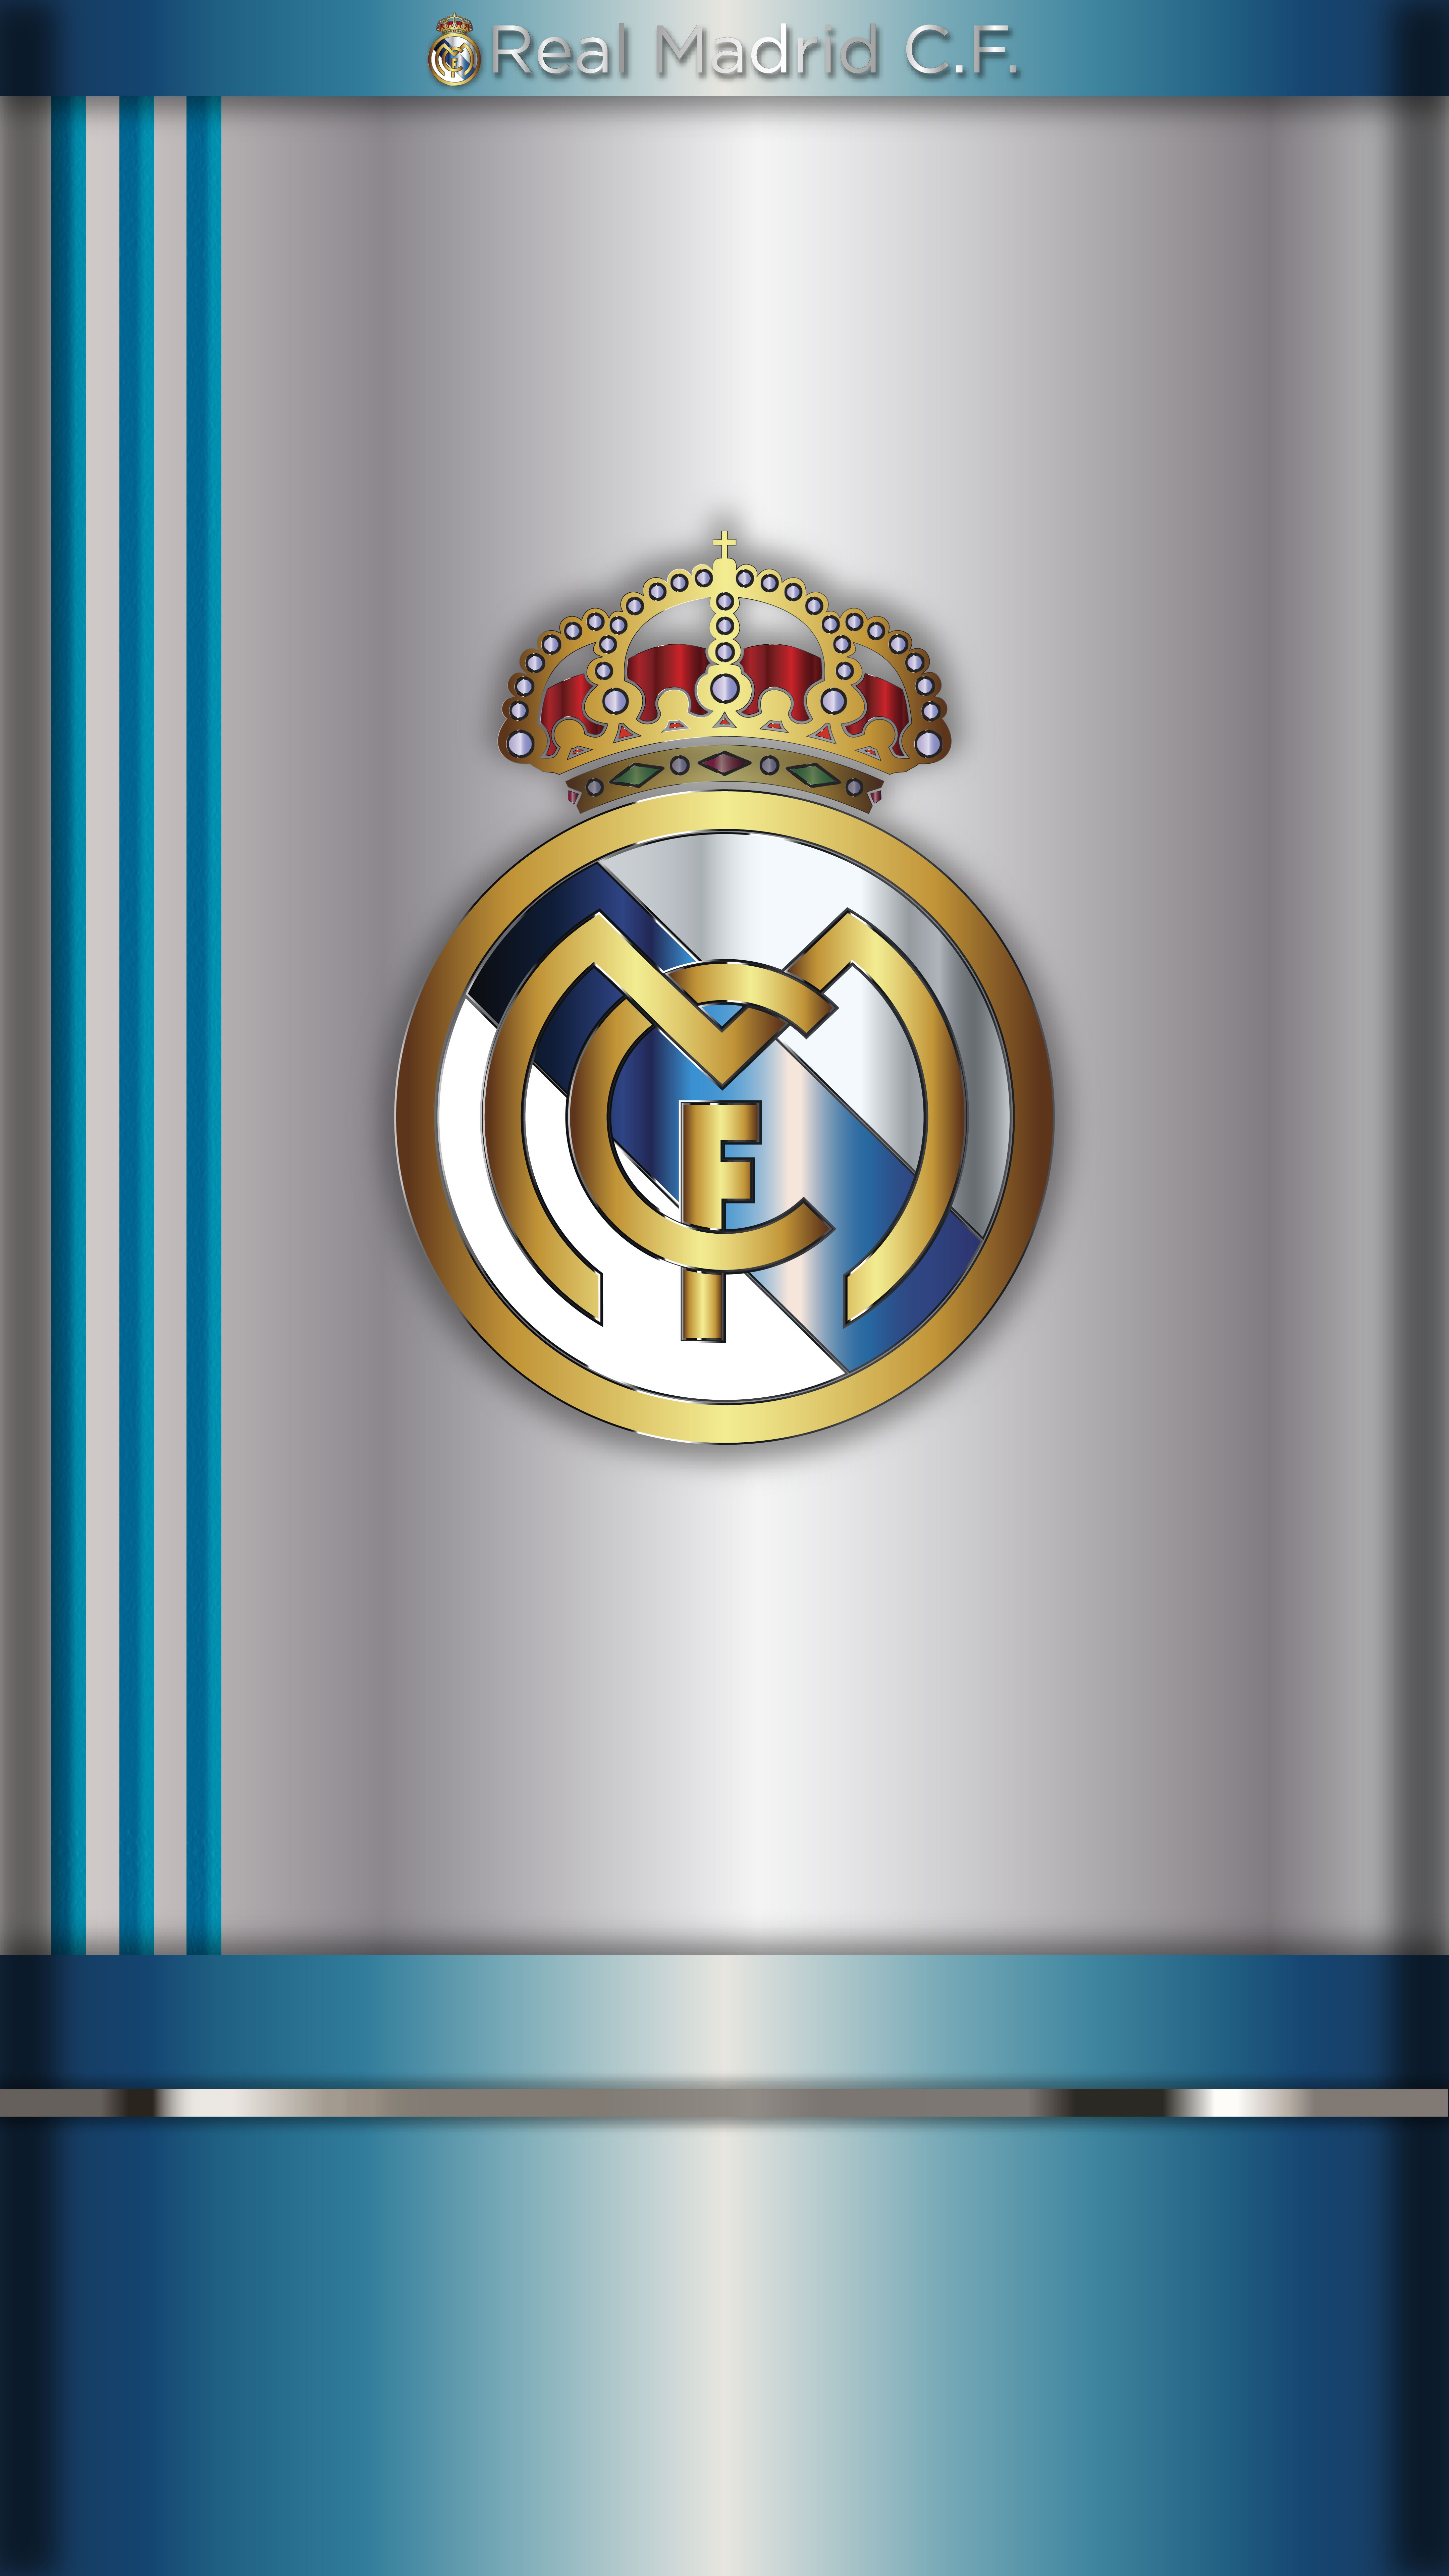 Fondo de pantalla hd real madrid 5 5 pulgadas fondos de for Real madrid oficinas telefono